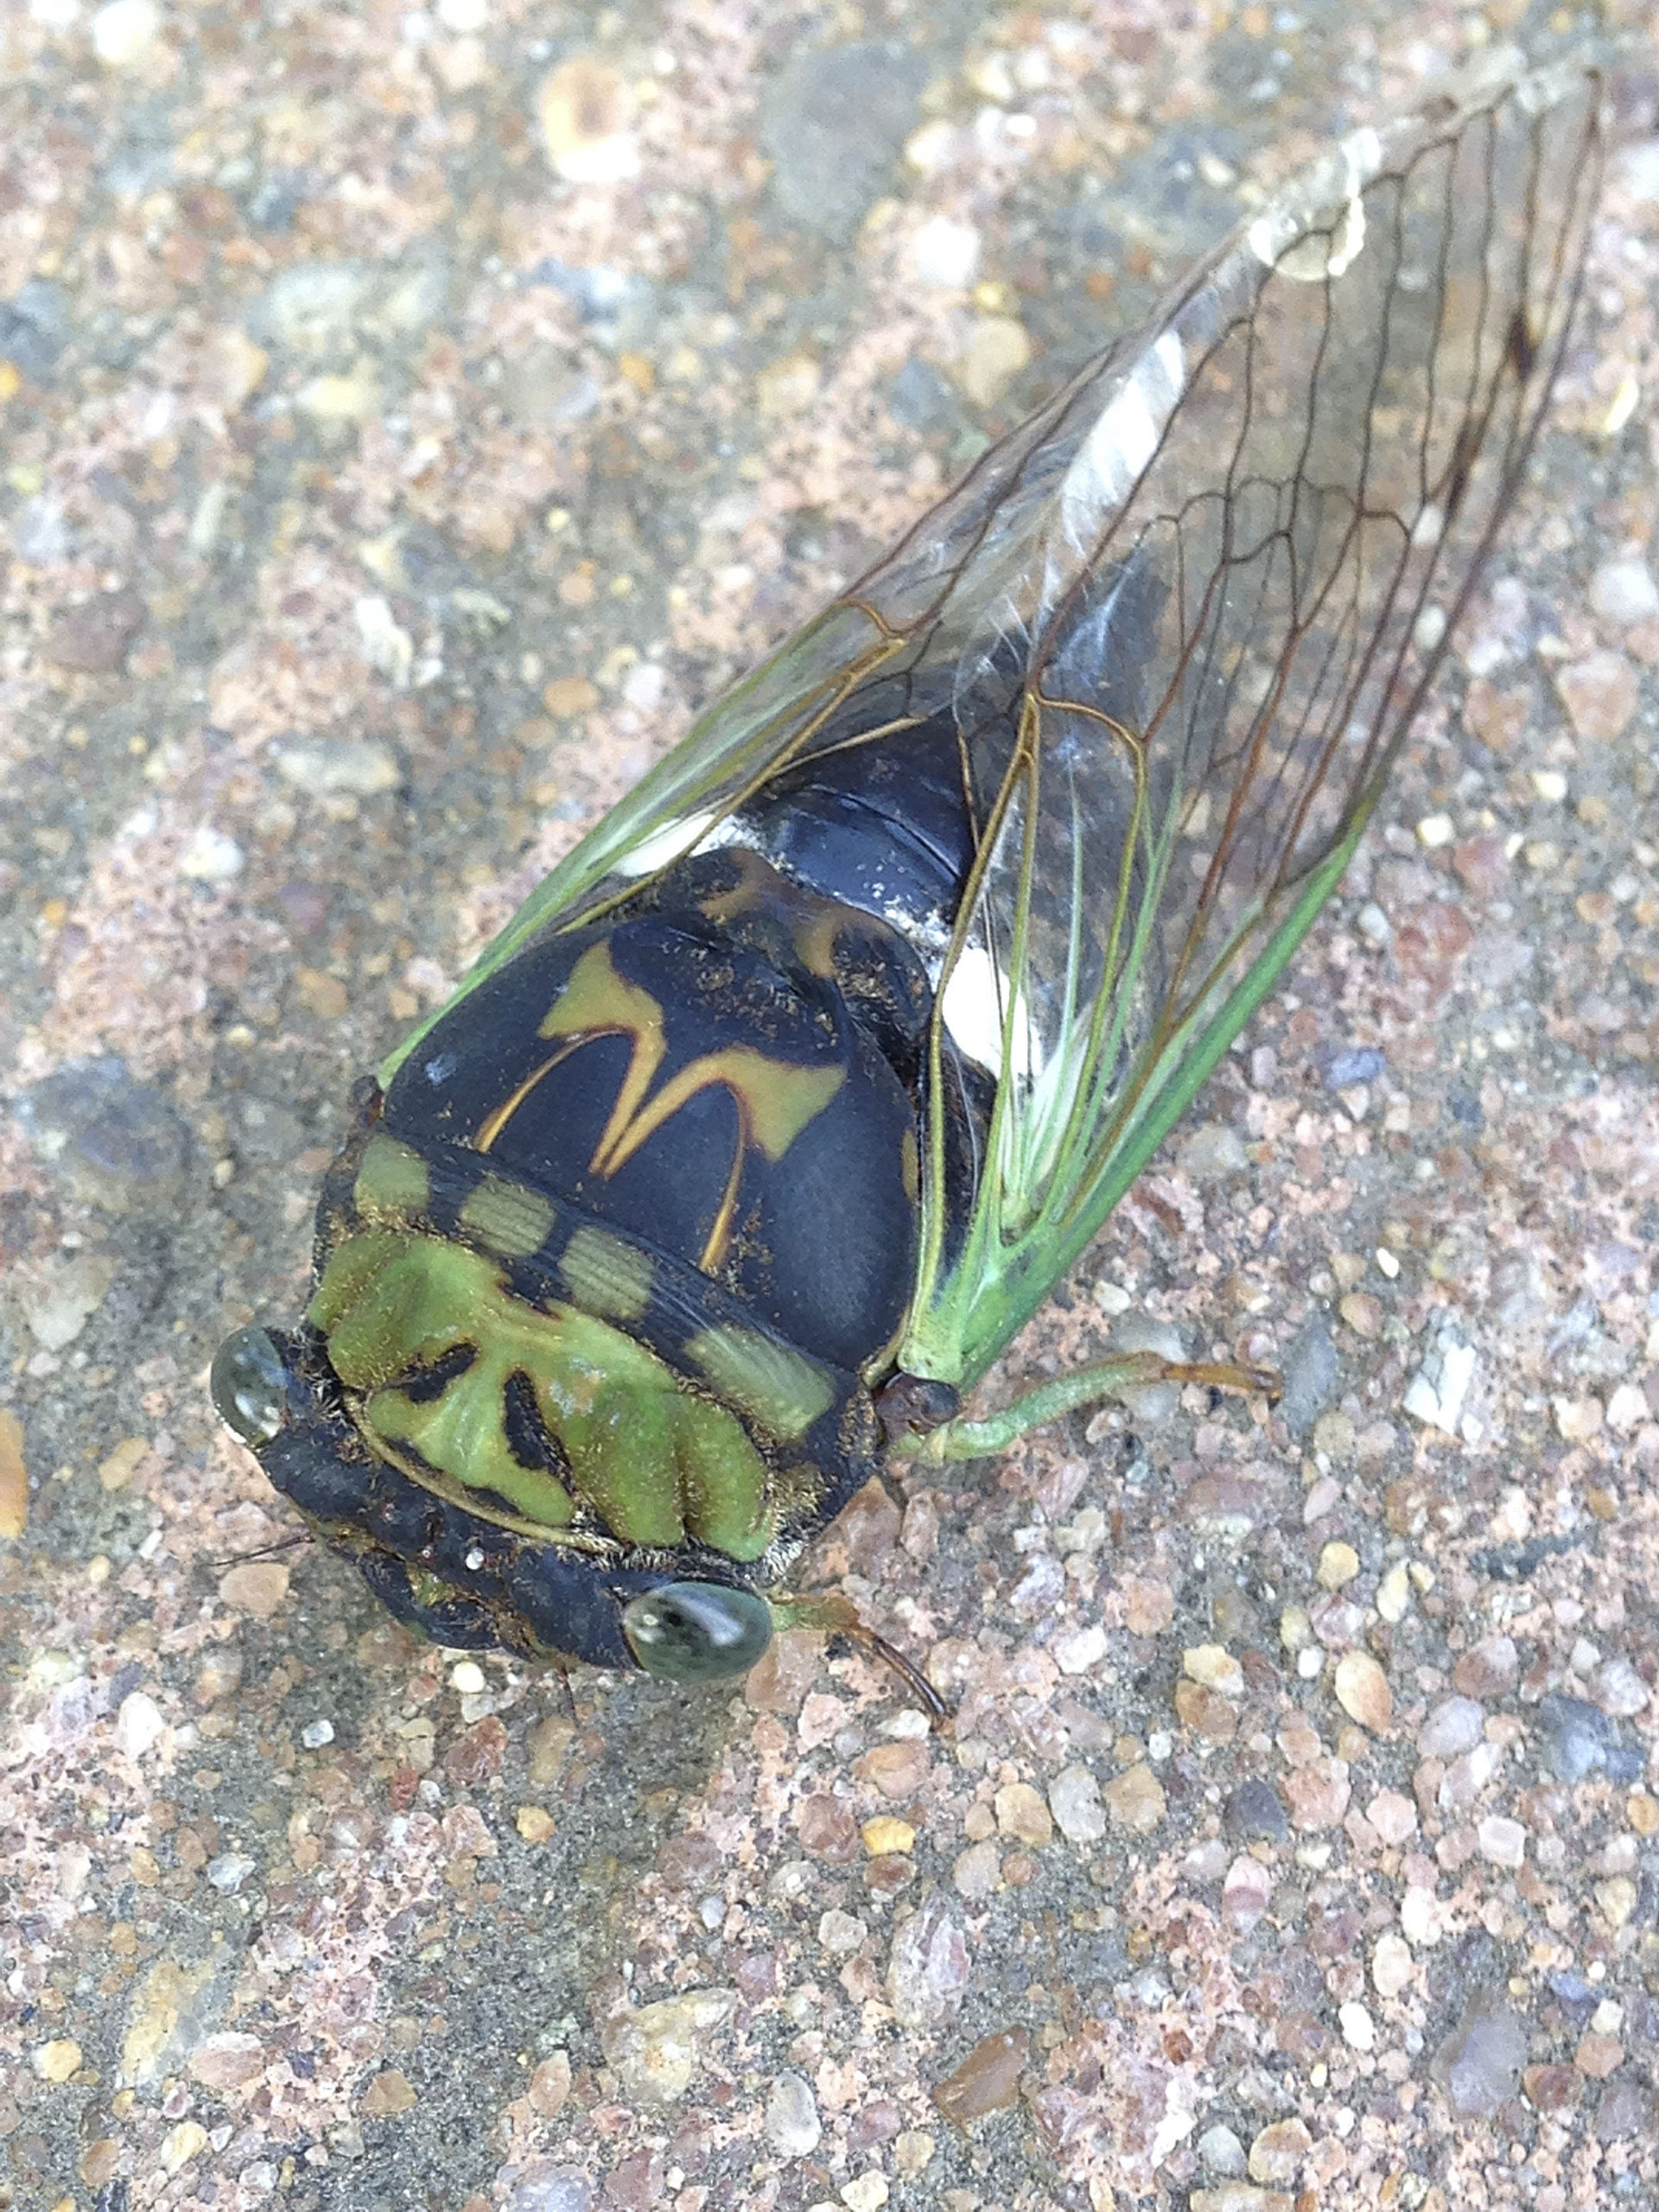 The cicada with blue-green wing veins is an annual or 'dog-day' cicada. These have a much shorter life cycle  and emerge later around mid-summer. Most people have heard the buzzing call of the males from high in the trees. They are here on Long Island every year.    DANA SHAW